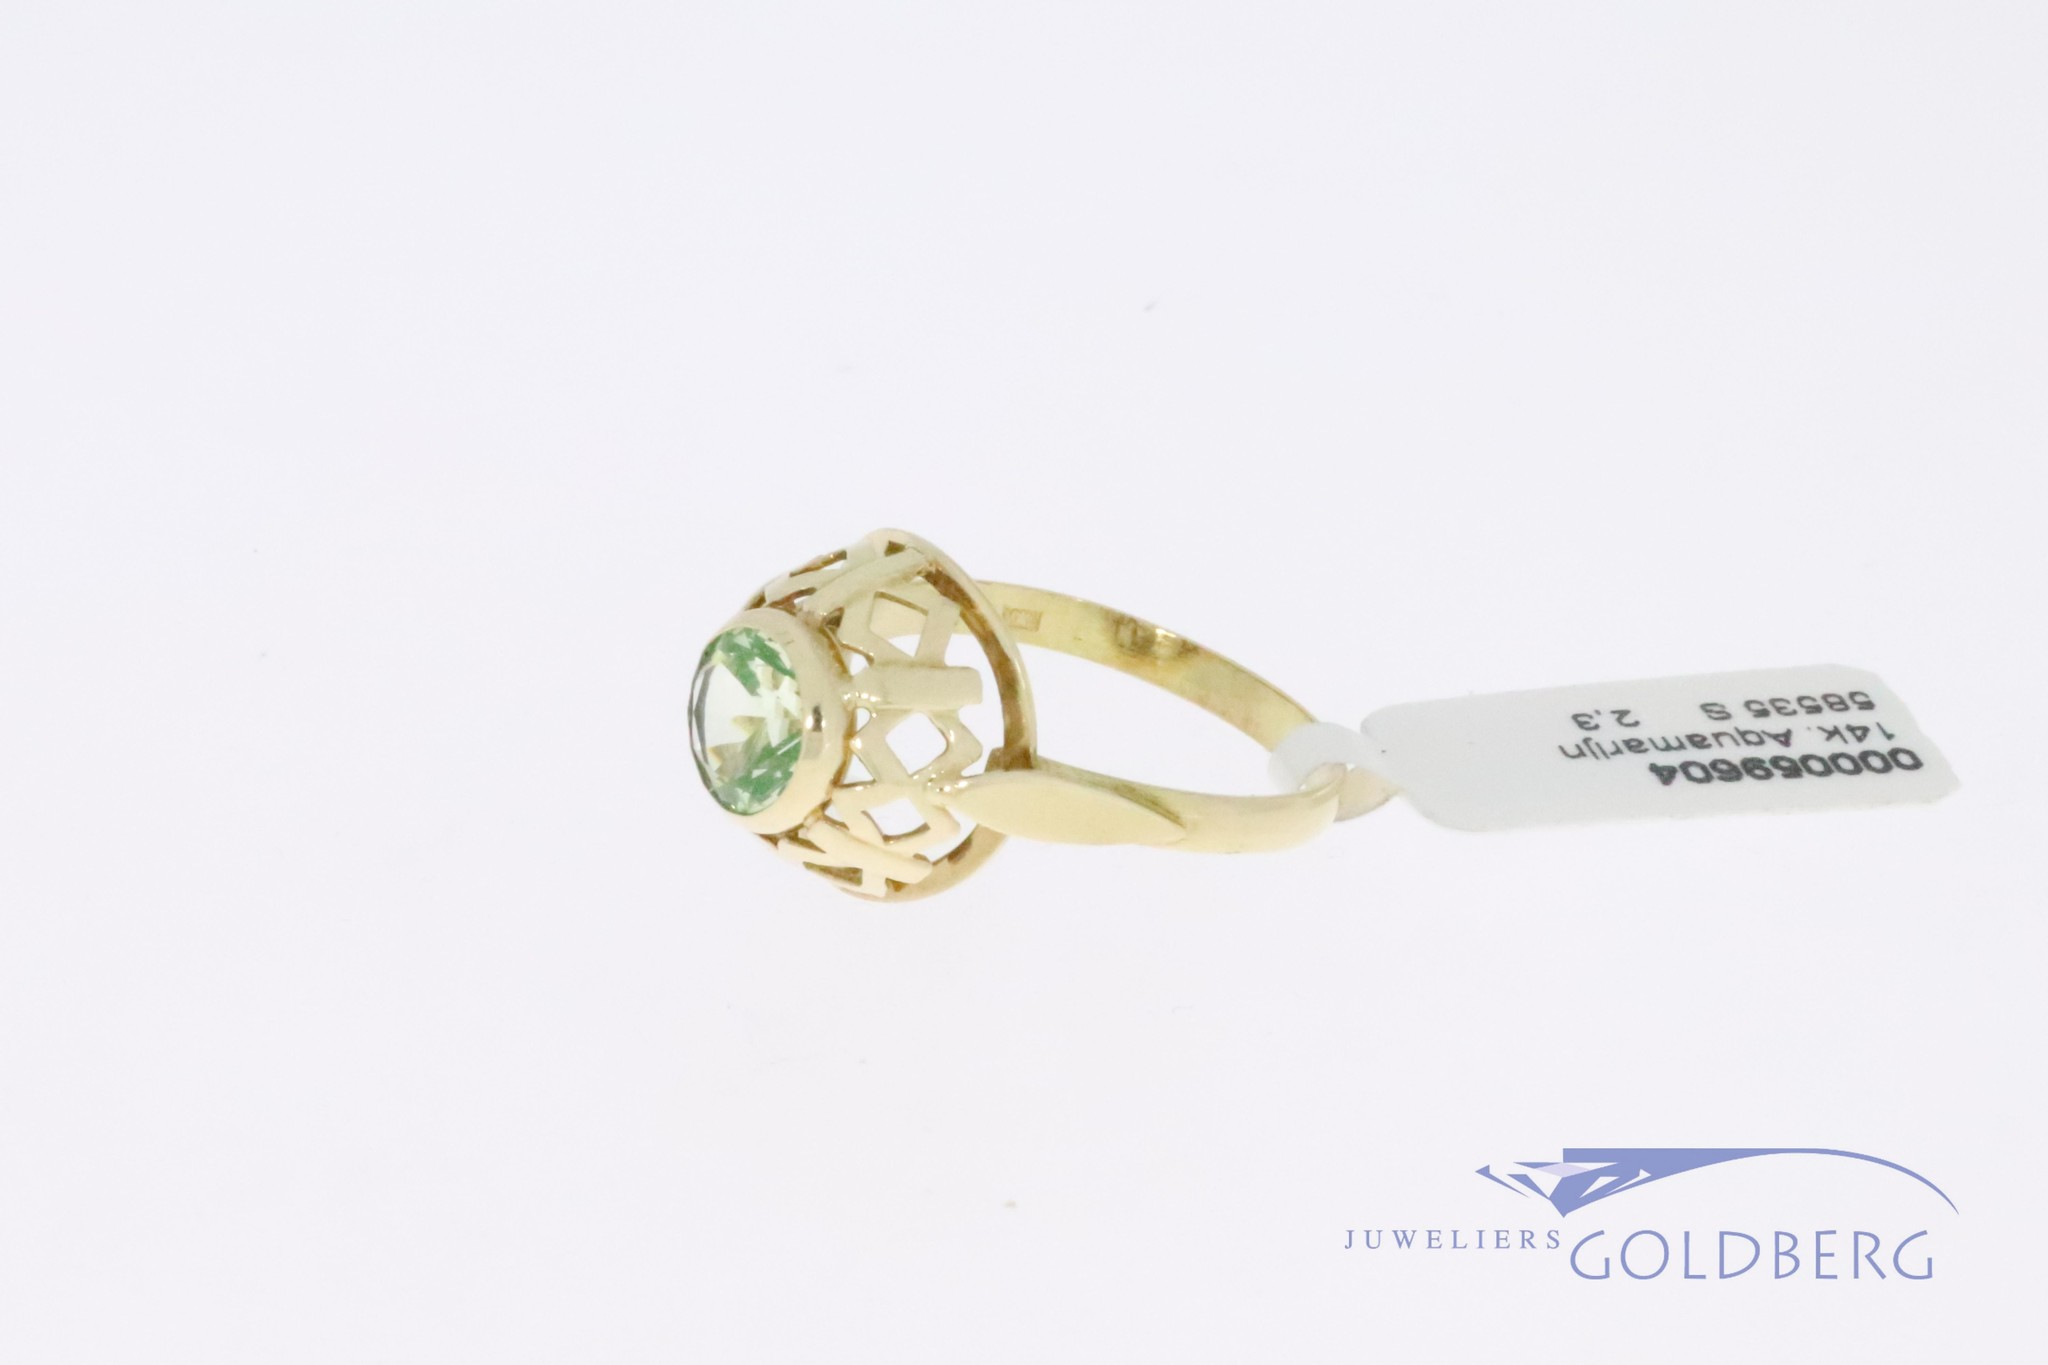 14k gold vintage ring with round citrine